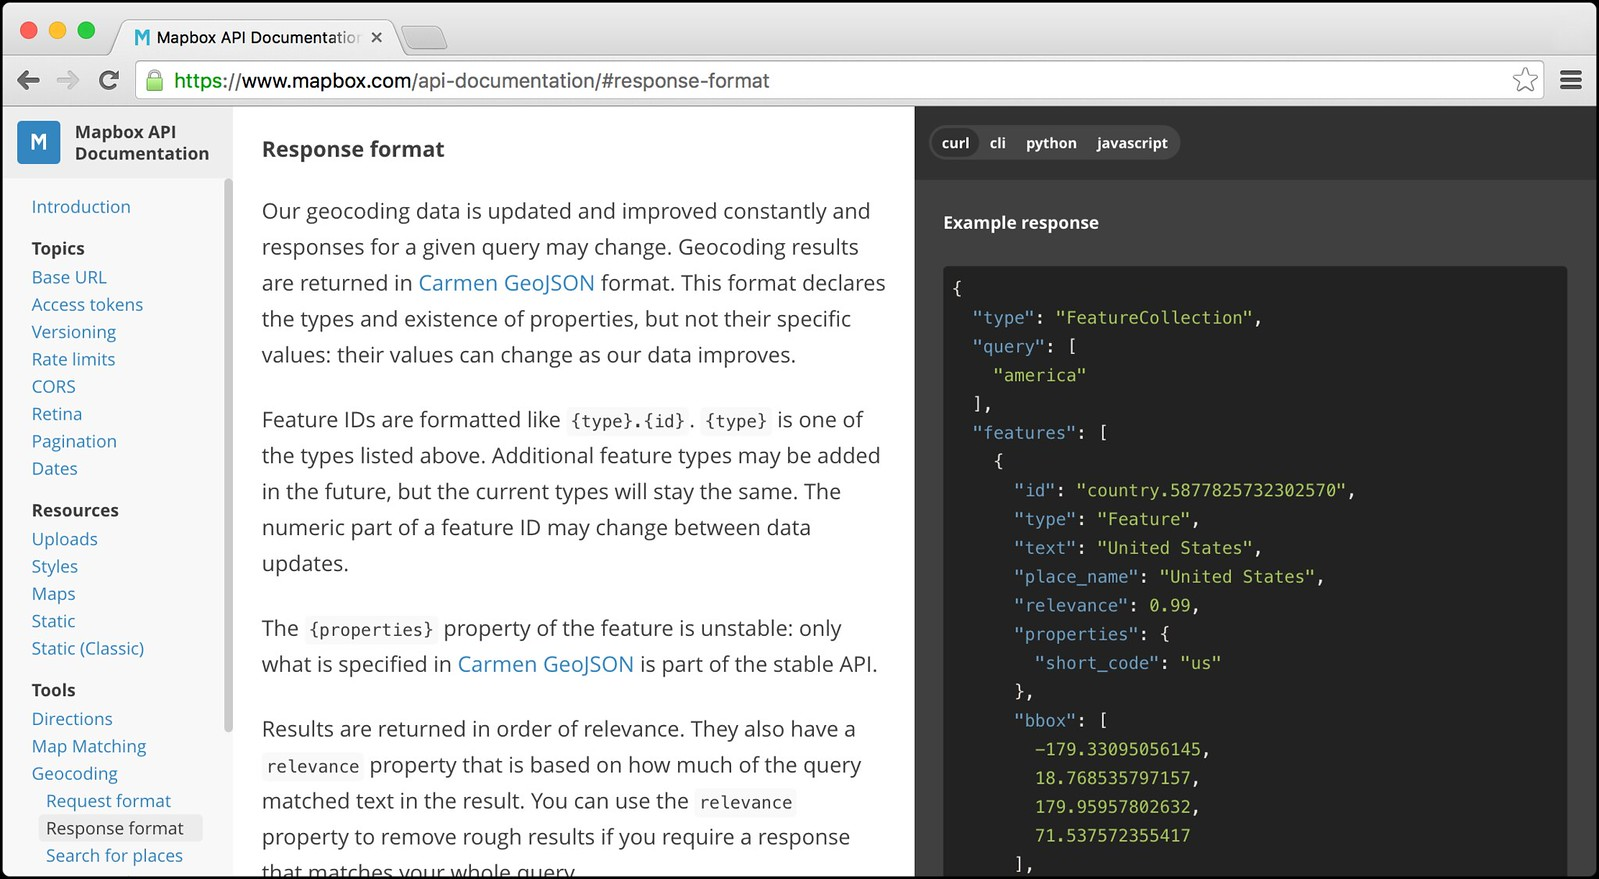 Meet the new Mapbox API documentation